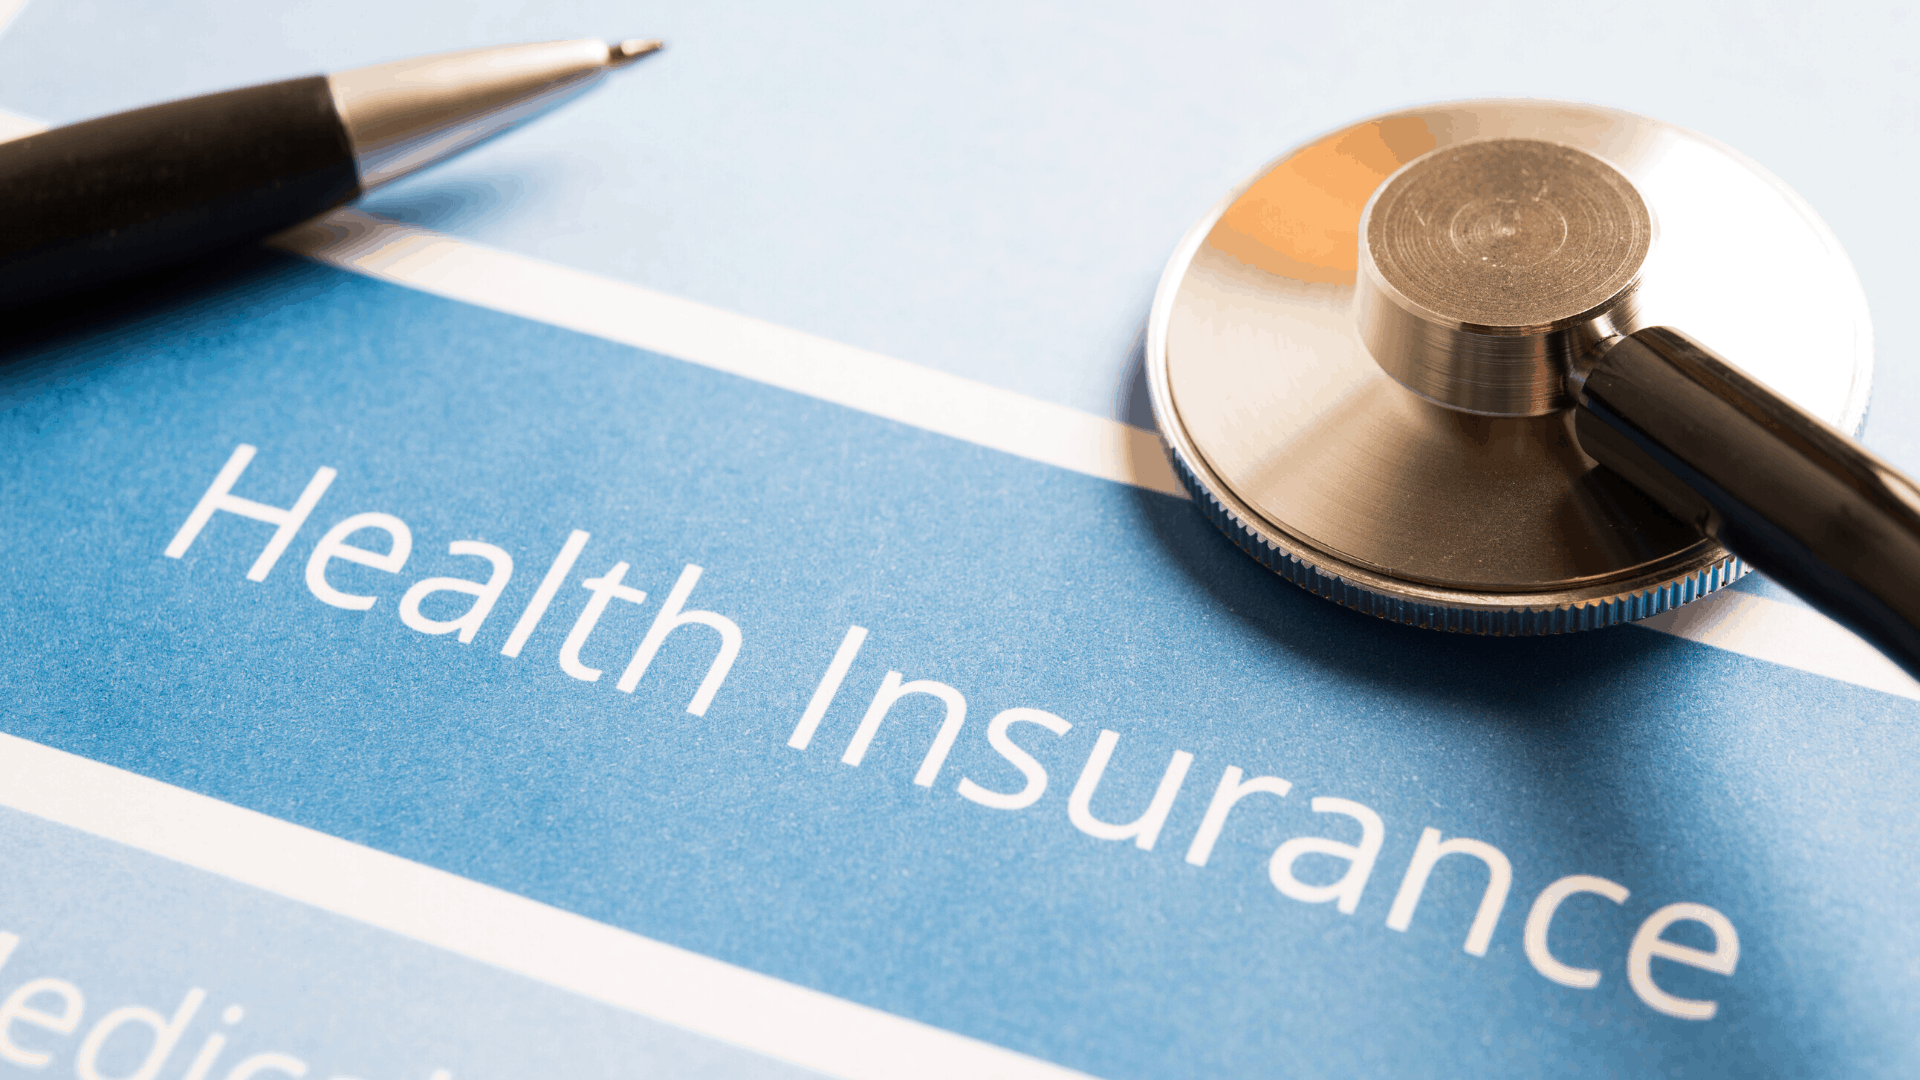 Health insurance - taking care of yourself